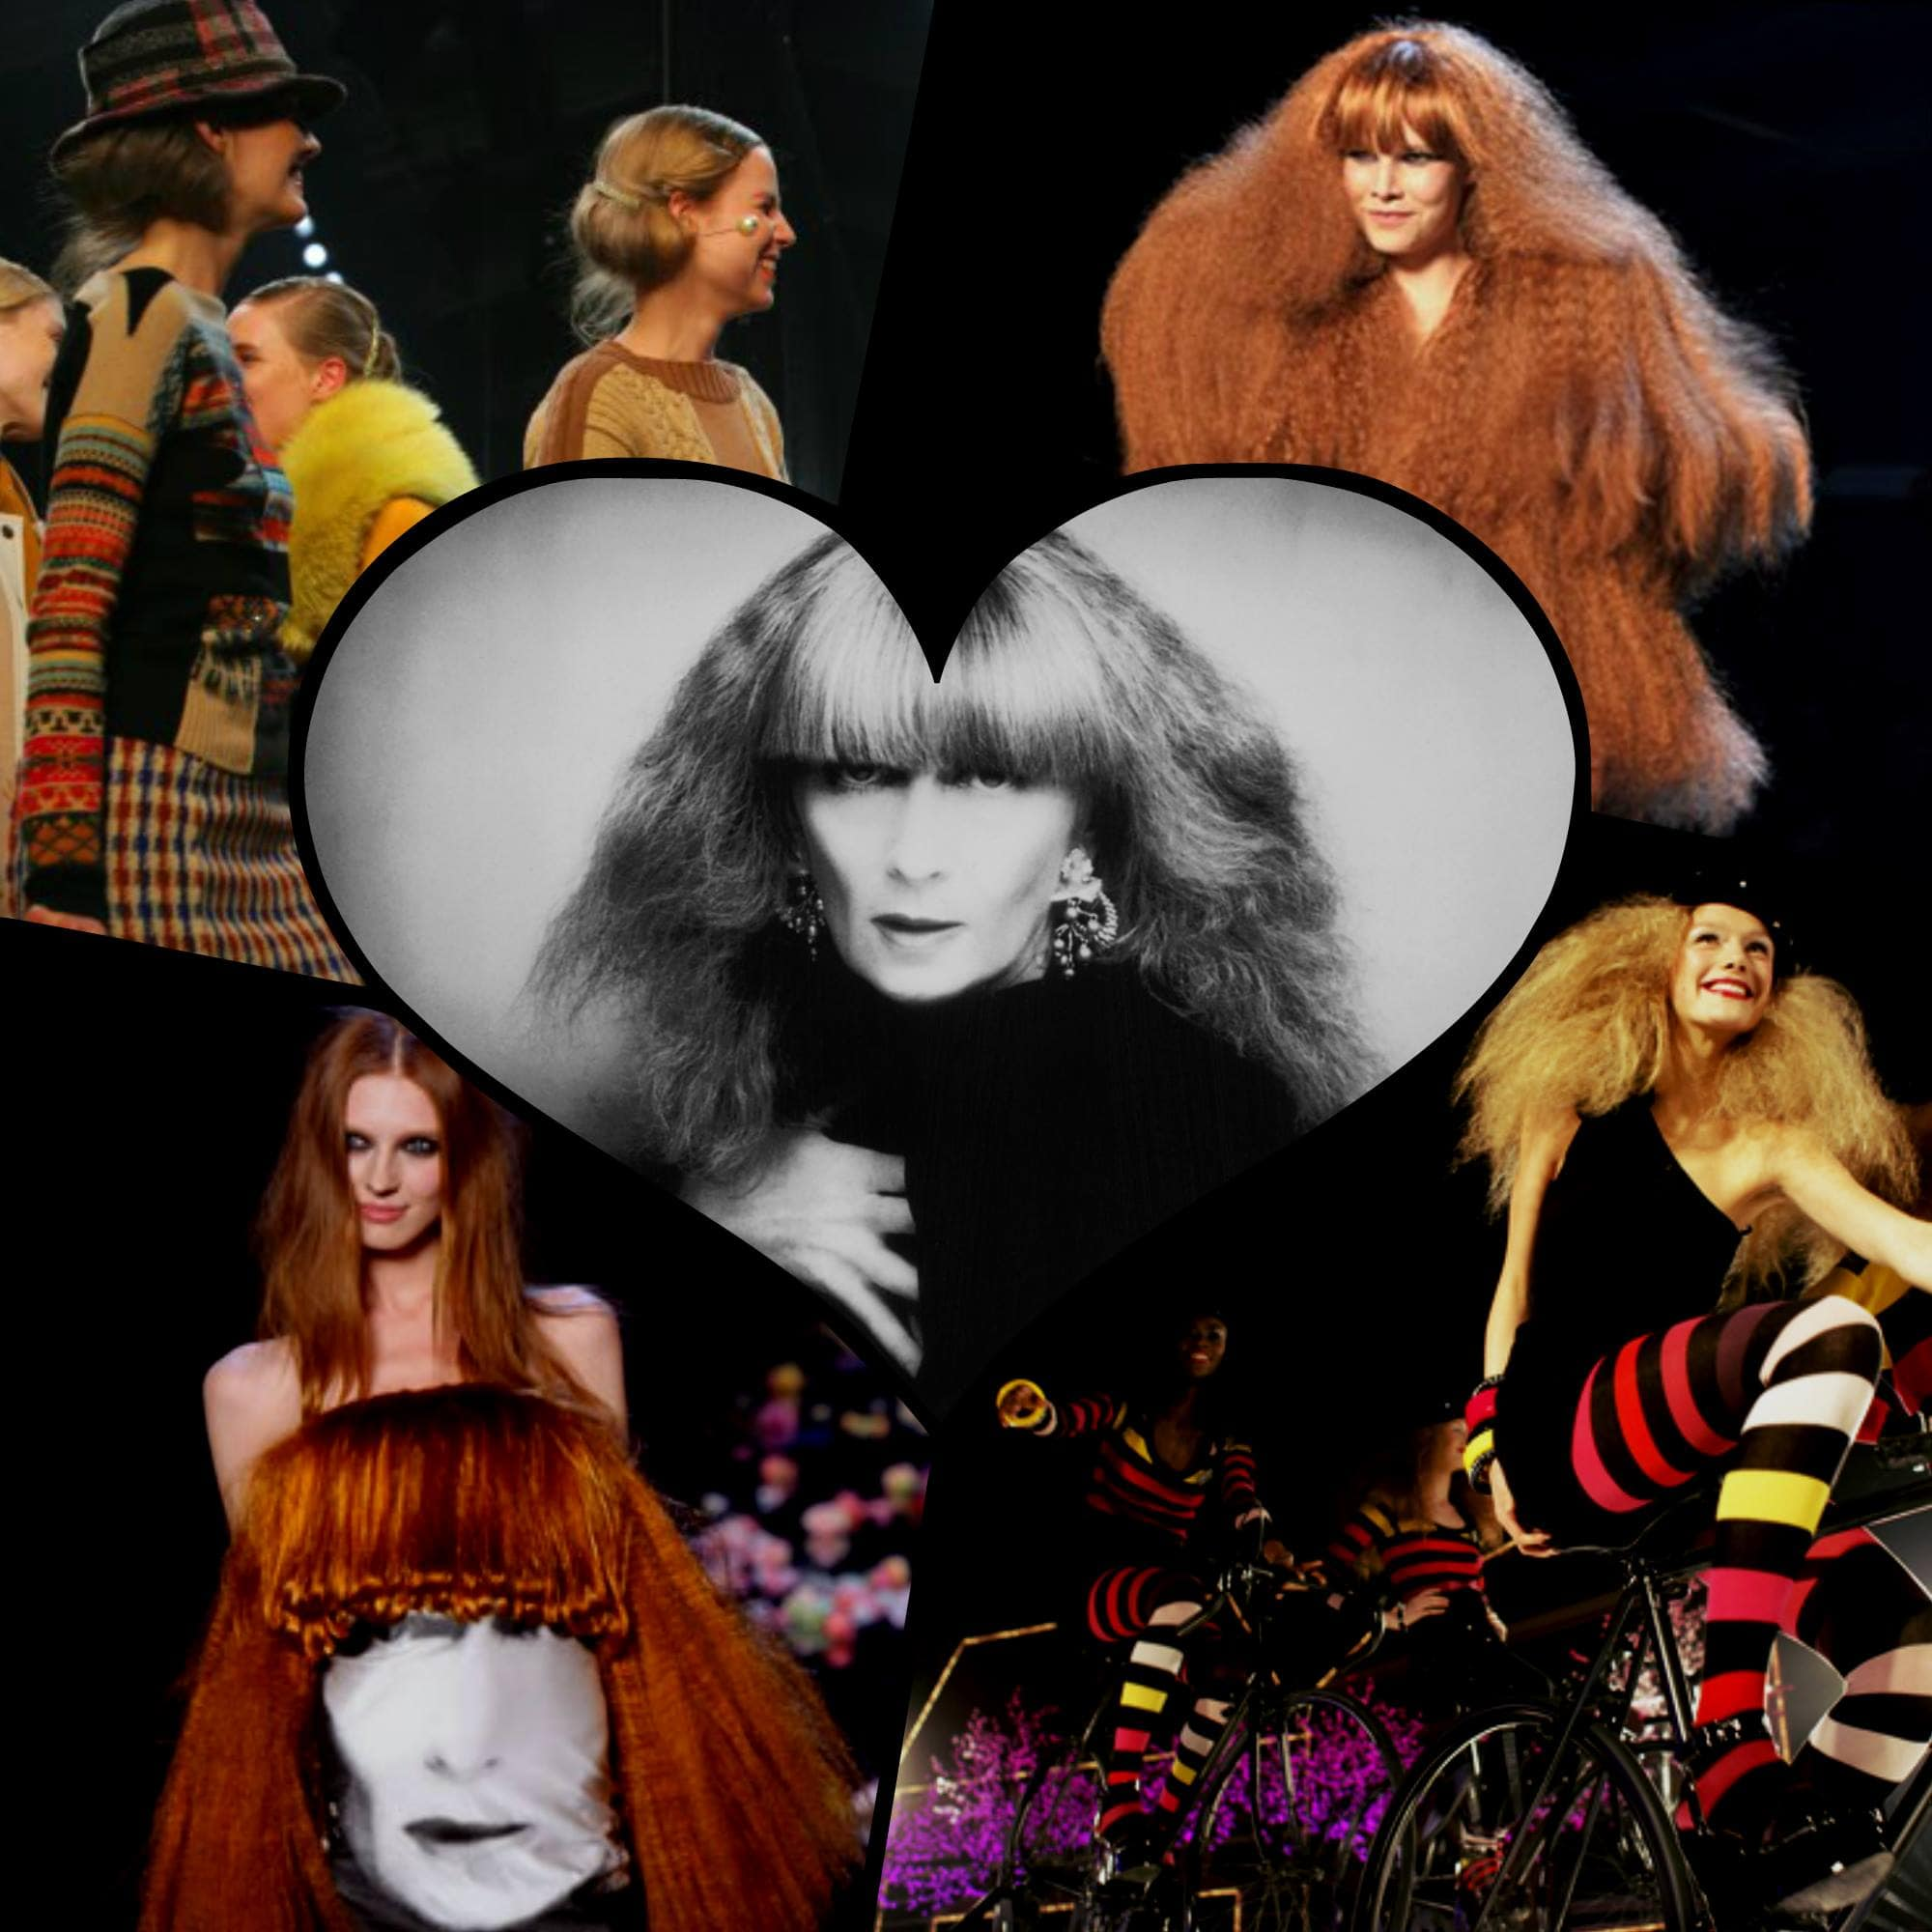 Sonia Rykiel died again-Liquidation and Bankruptcy of Fashion House